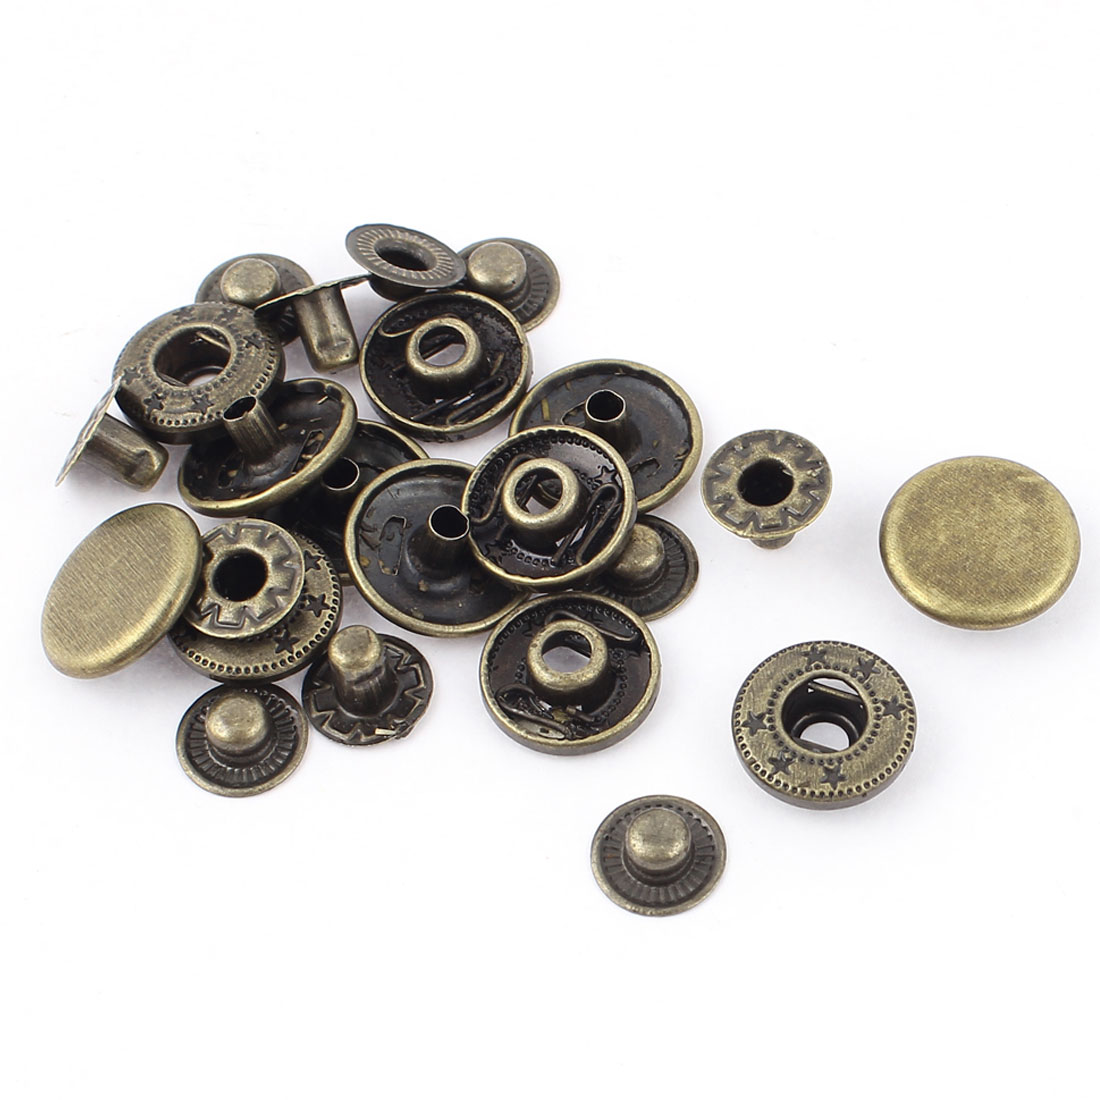 6 Sets 15mm Dia Cap Metal Clothing Sewing Finish Poppers Snap Fasteners Press Stud Button